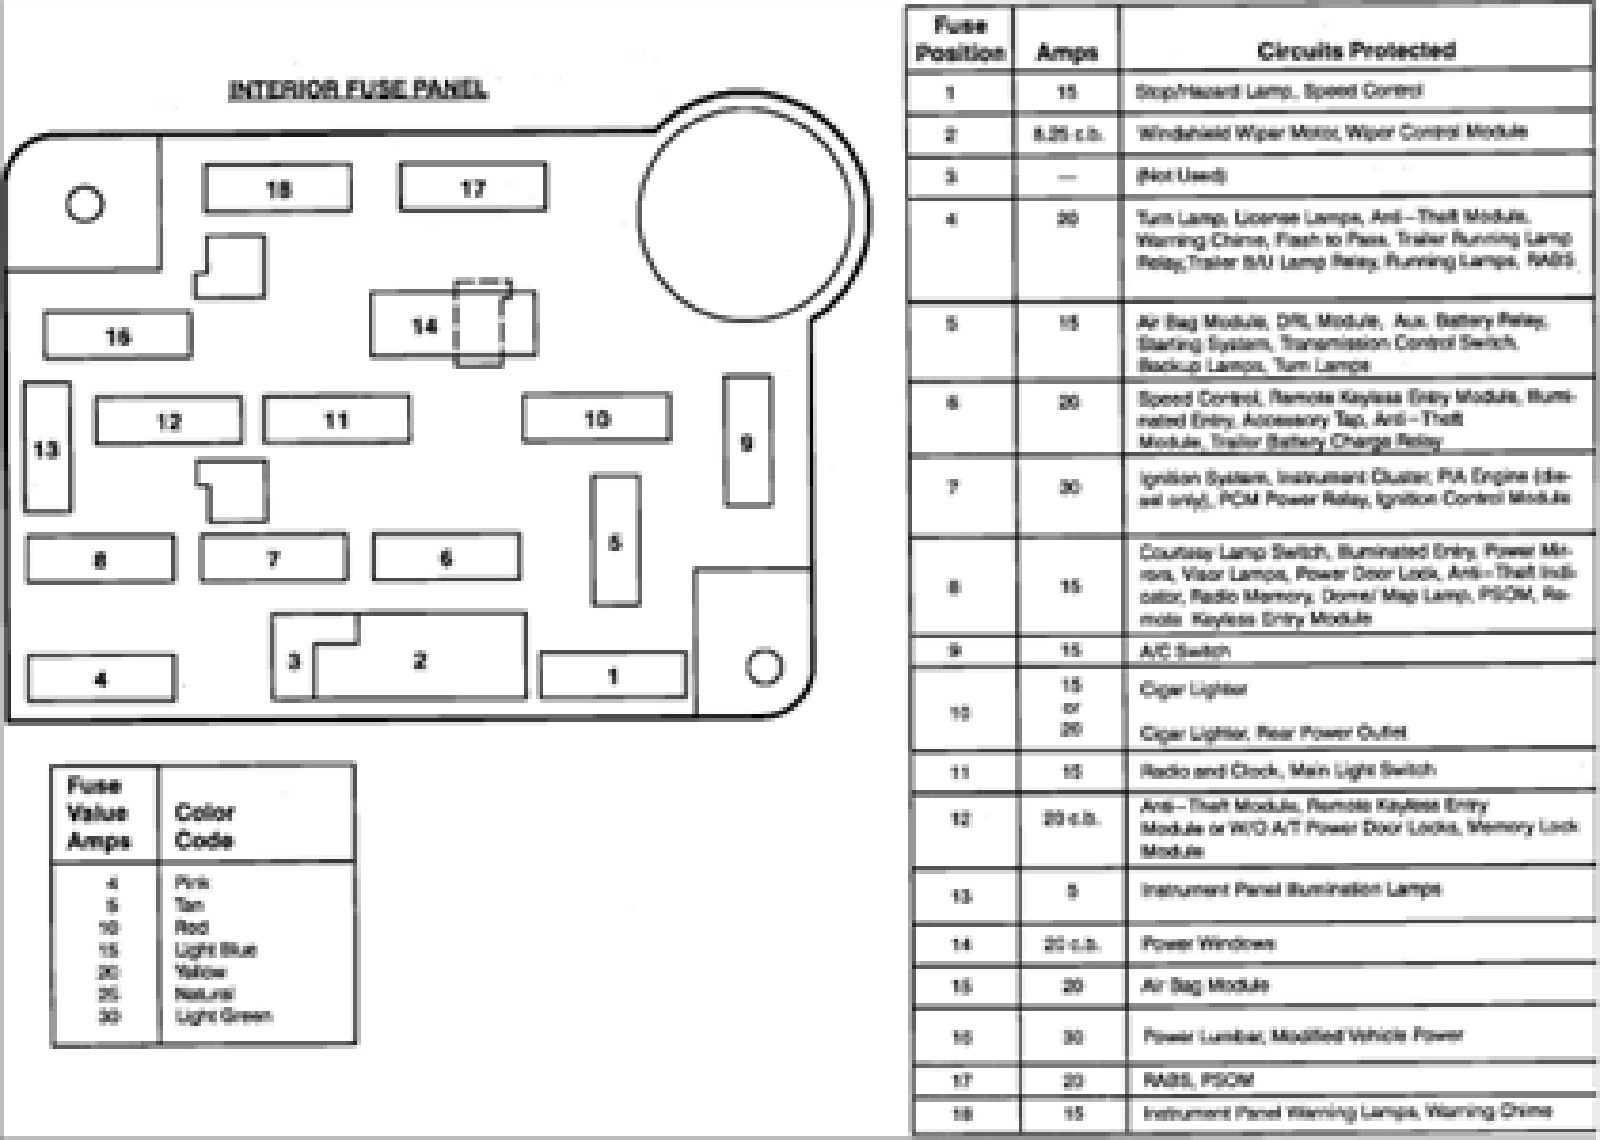 2004 ford e350 wiring diagram focus 2006 e150 fuse box free engine image